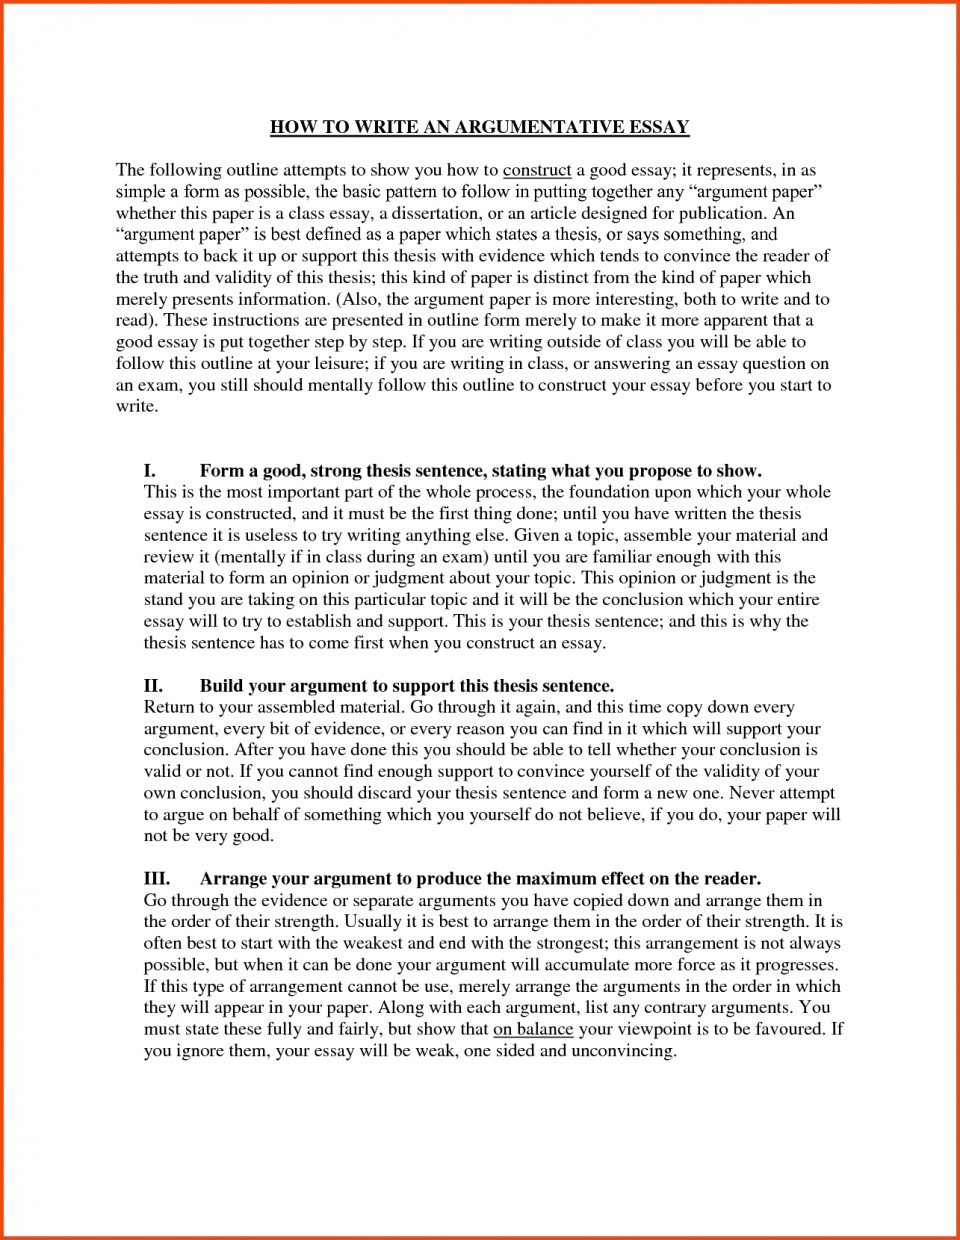 005 Essay Example How To Start An Brilliant Ideas Of Good Ways About Yourself Dissertation Nice Amazing With A Question Introduction Quote Apa 960